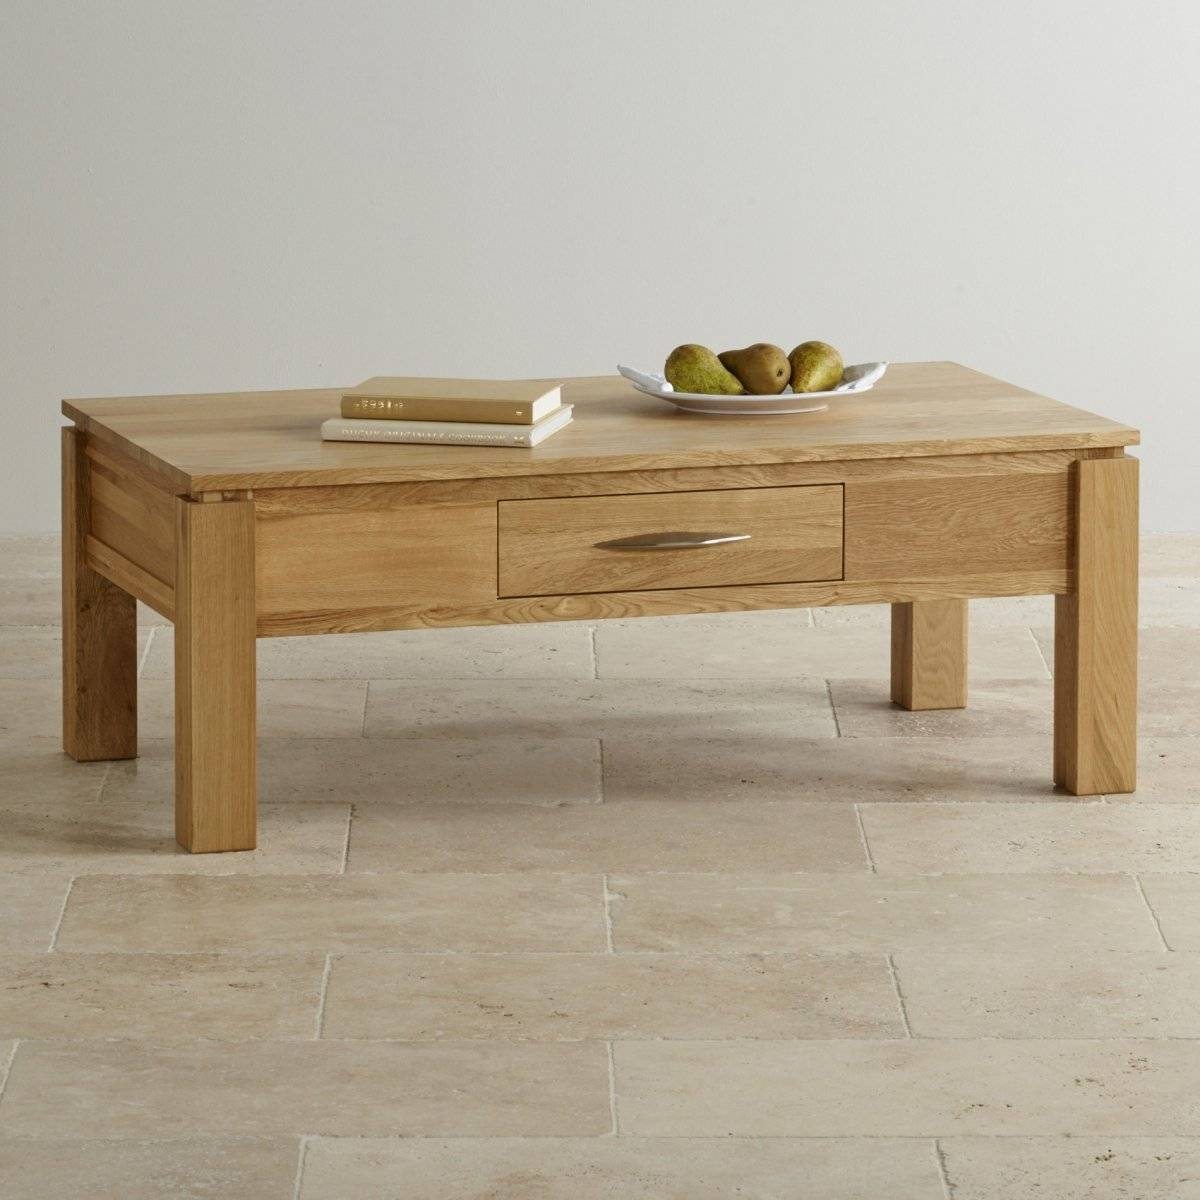 Galway Large Coffee Table In Solid Oak | Oak Furniture Land in Oak Wood Coffee Tables (Image 7 of 15)